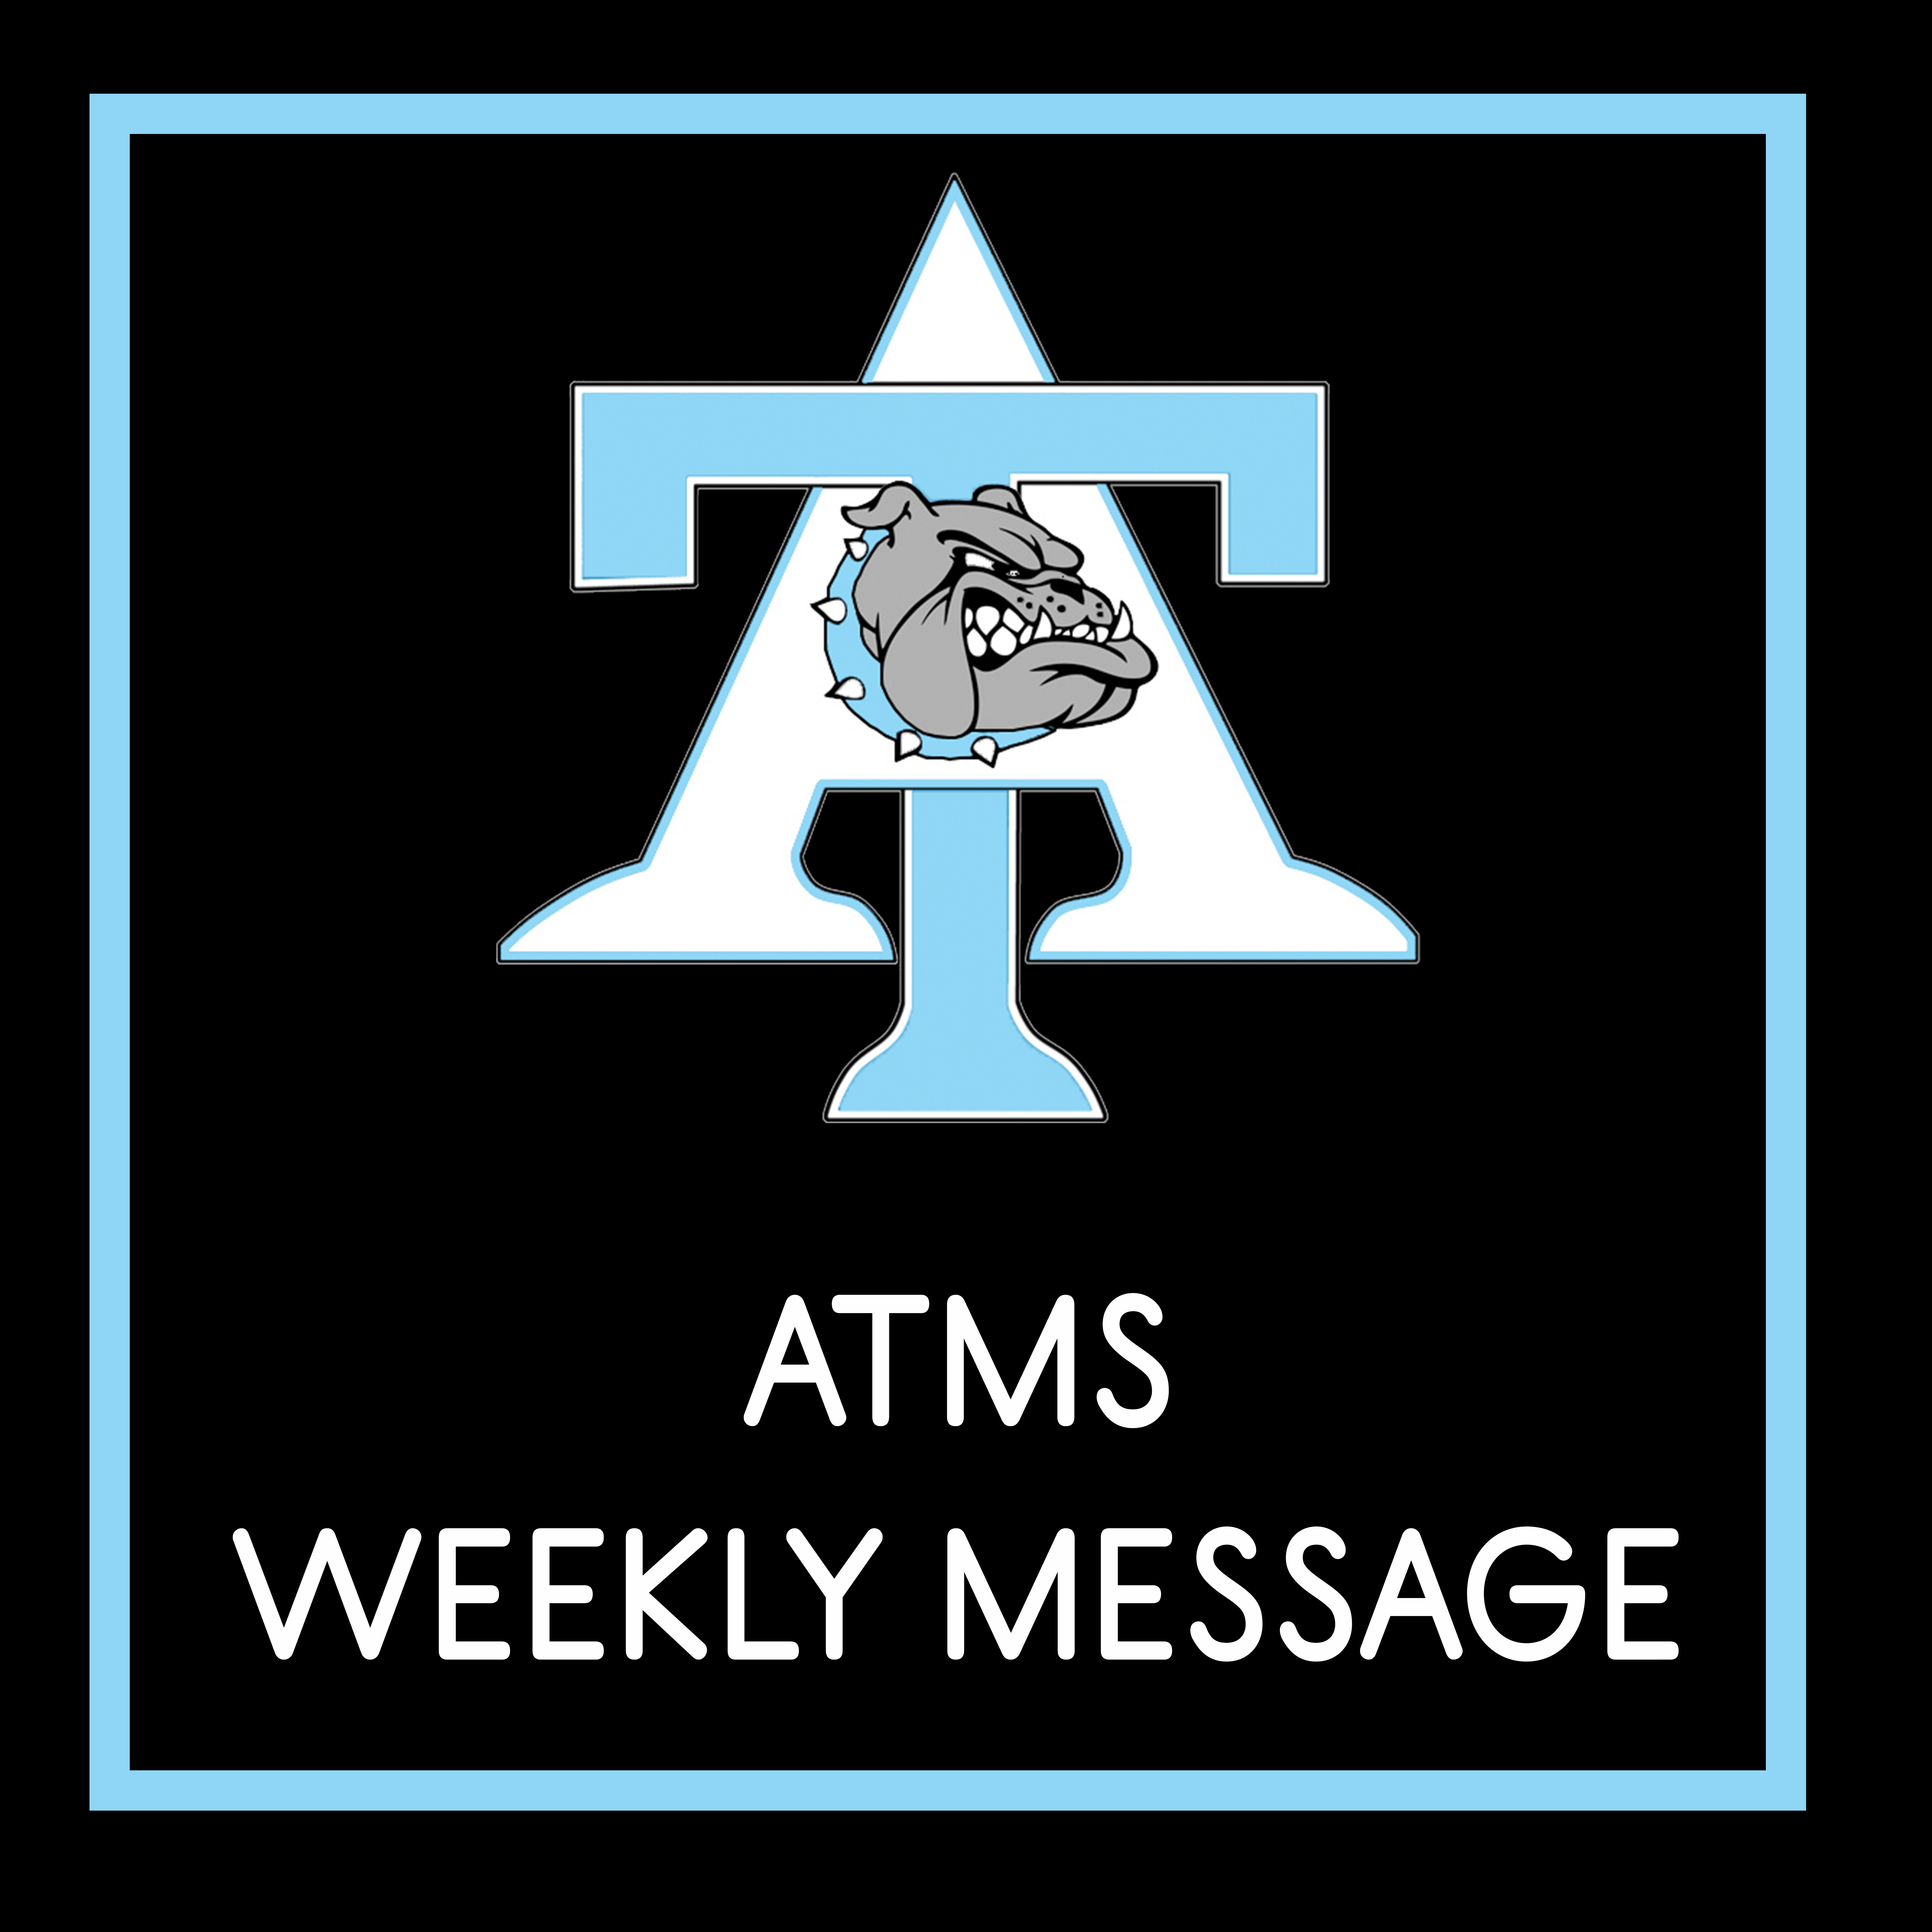 ATMS Messages Icon